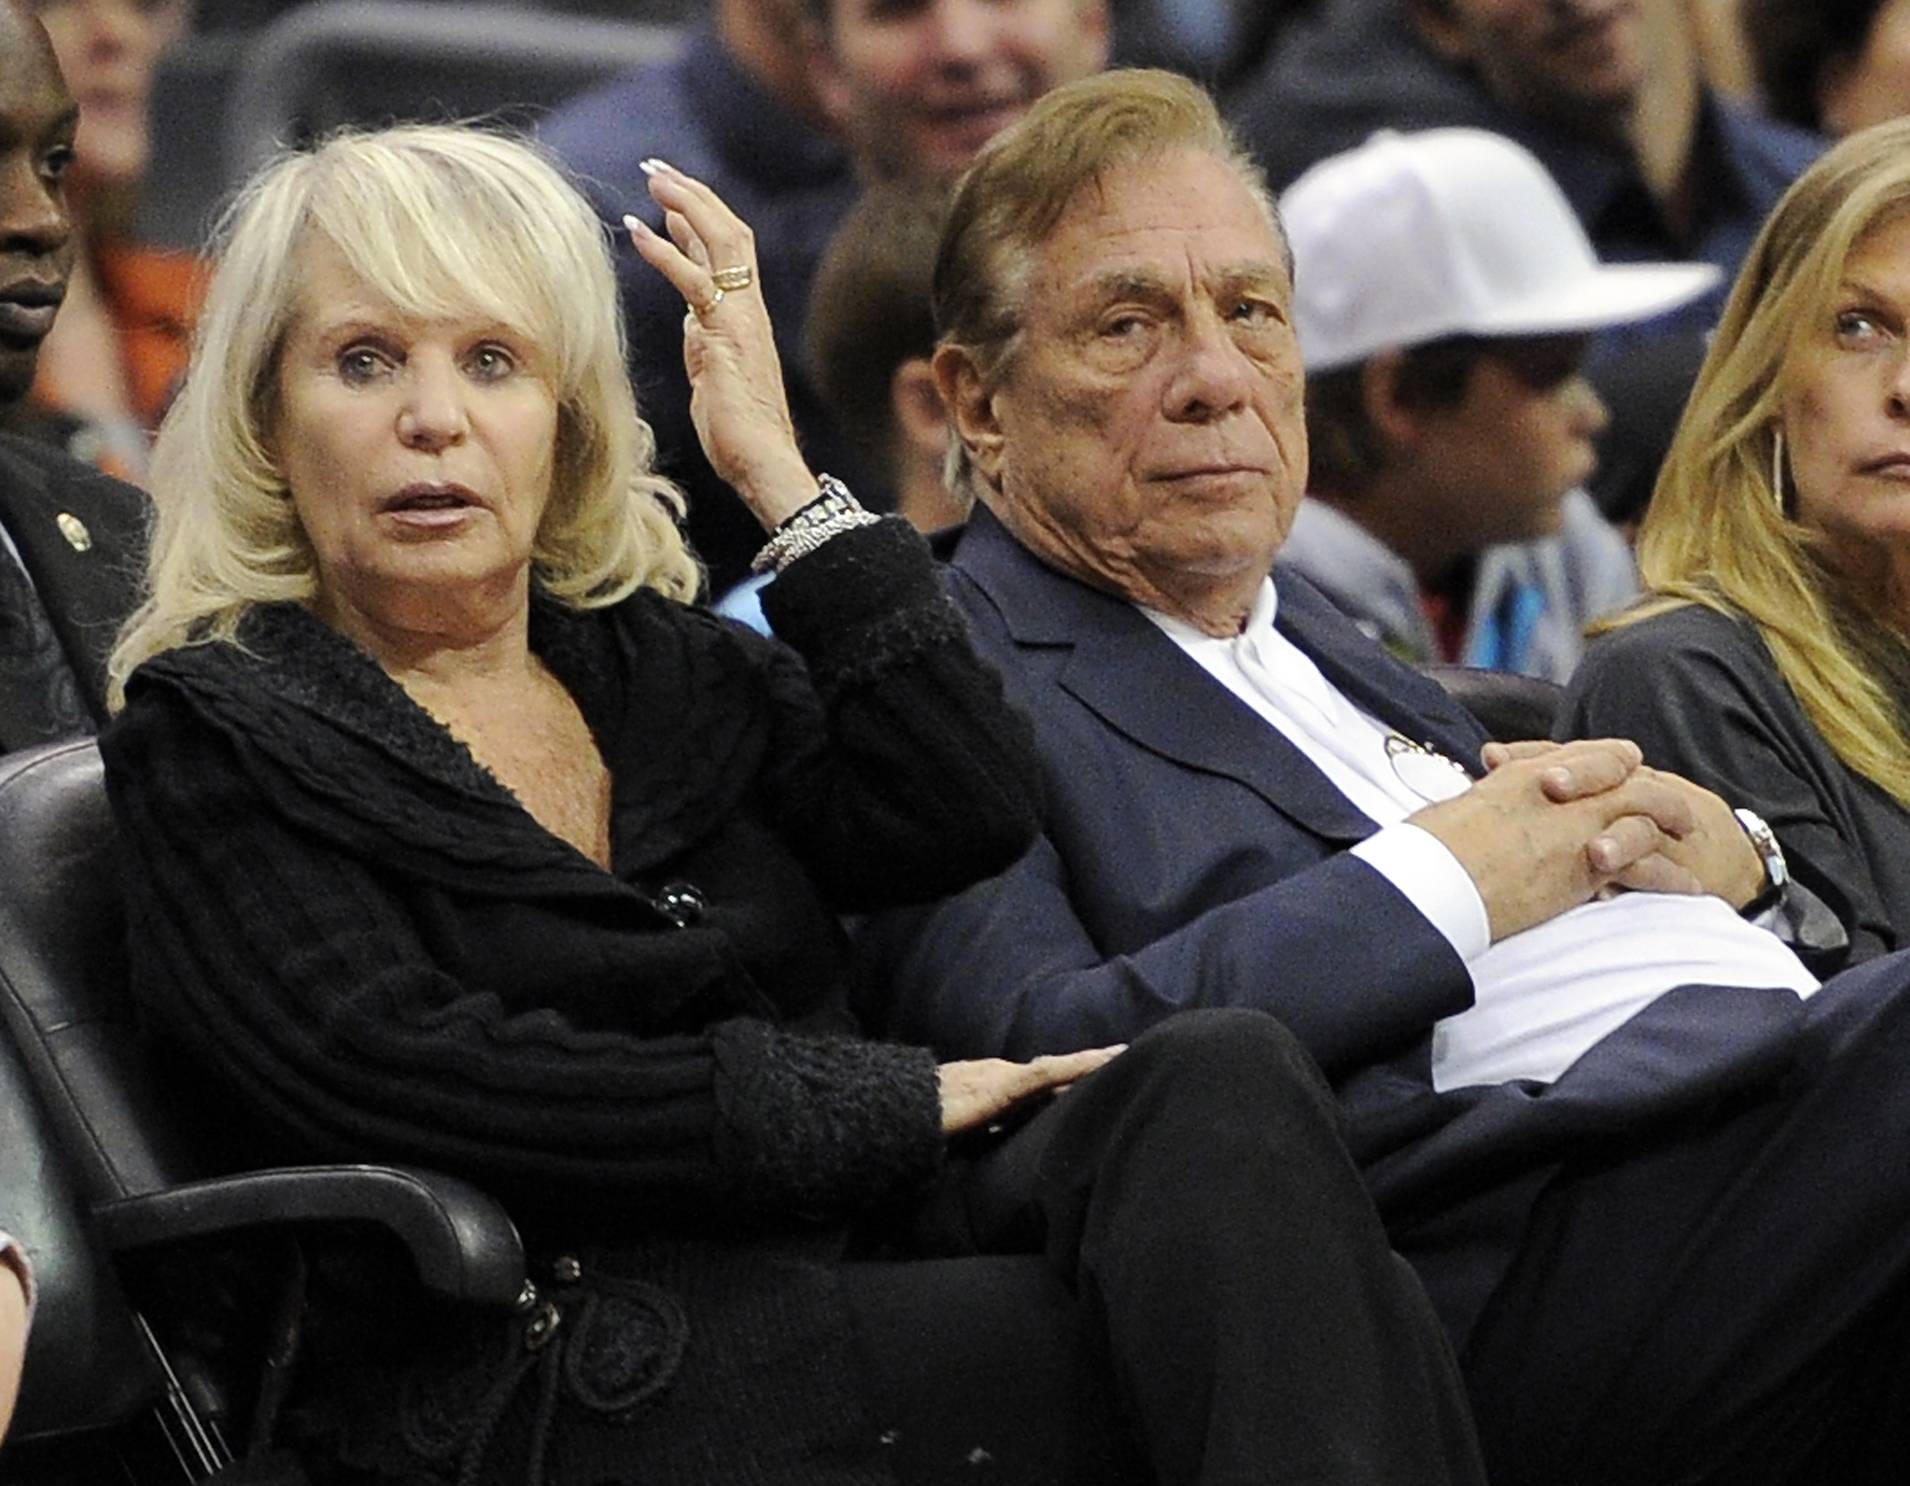 Los Angeles Clippers owner Donald T. Sterling, right, sits with his wife Rochelle during the Clippers NBA basketball game against the Detroit Pistons in Los Angeles.